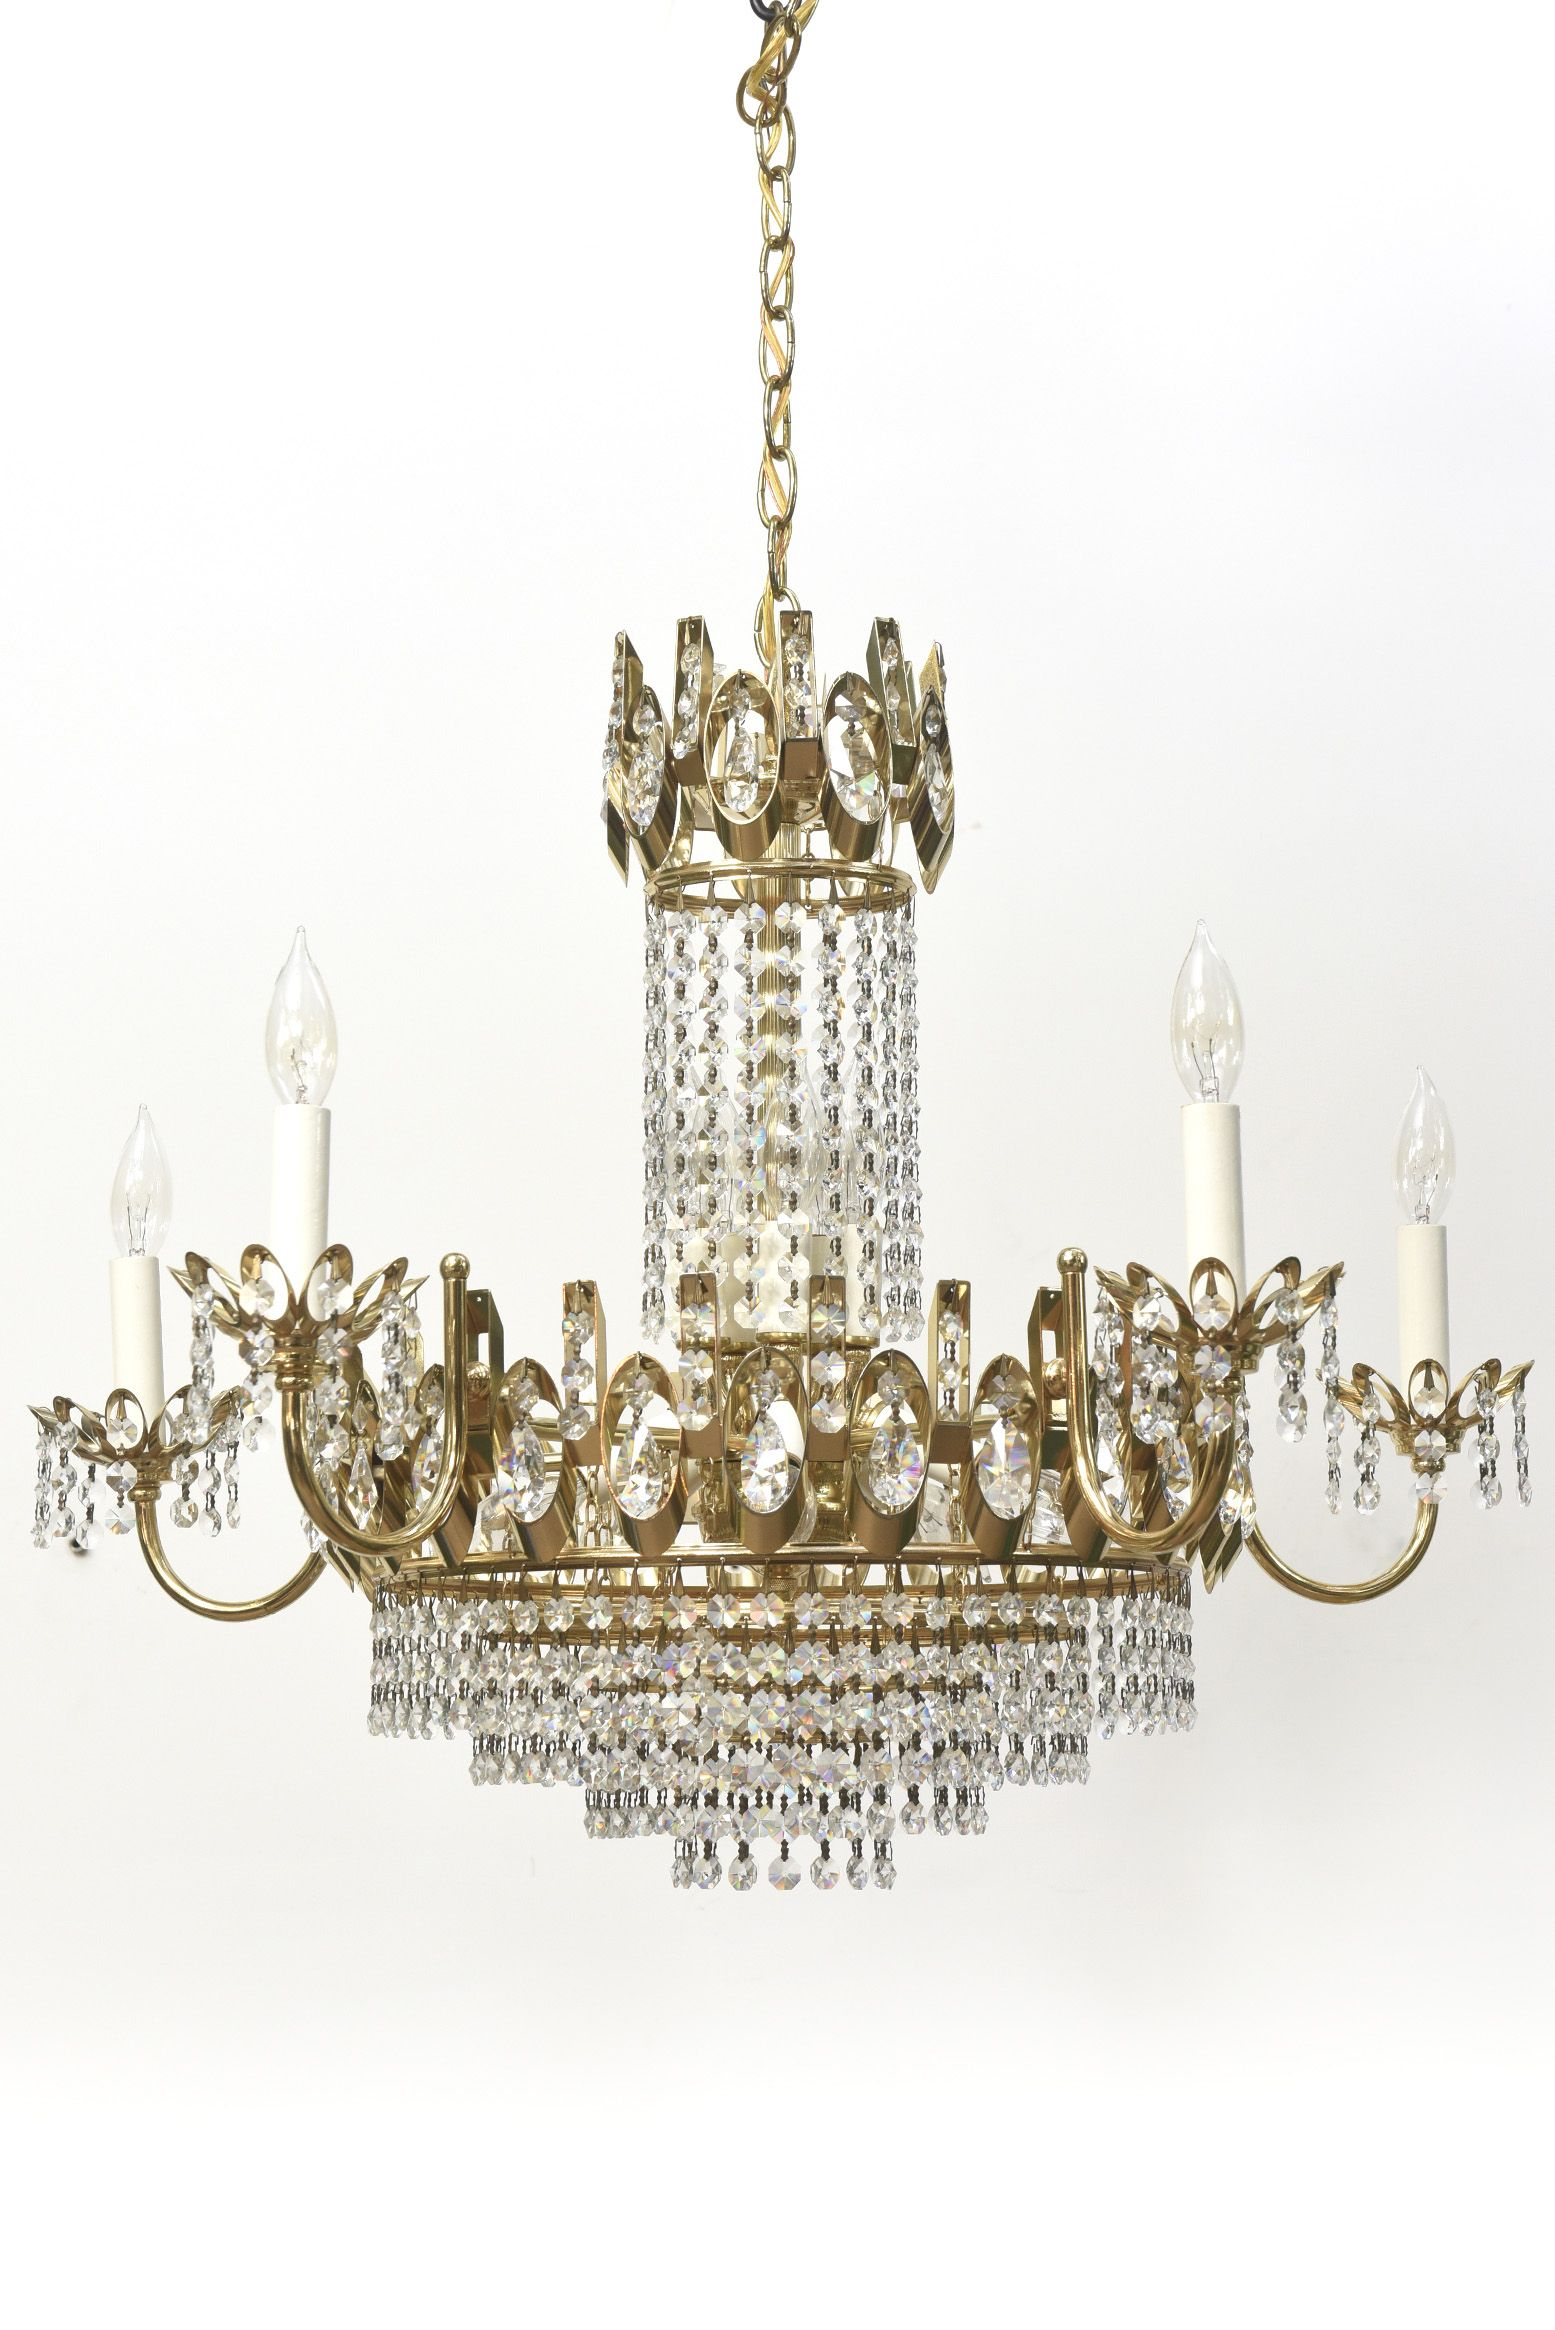 Vintage Strass Crystal Chandelier Chandelier Crystal Chandelier Hanging Light Lamp